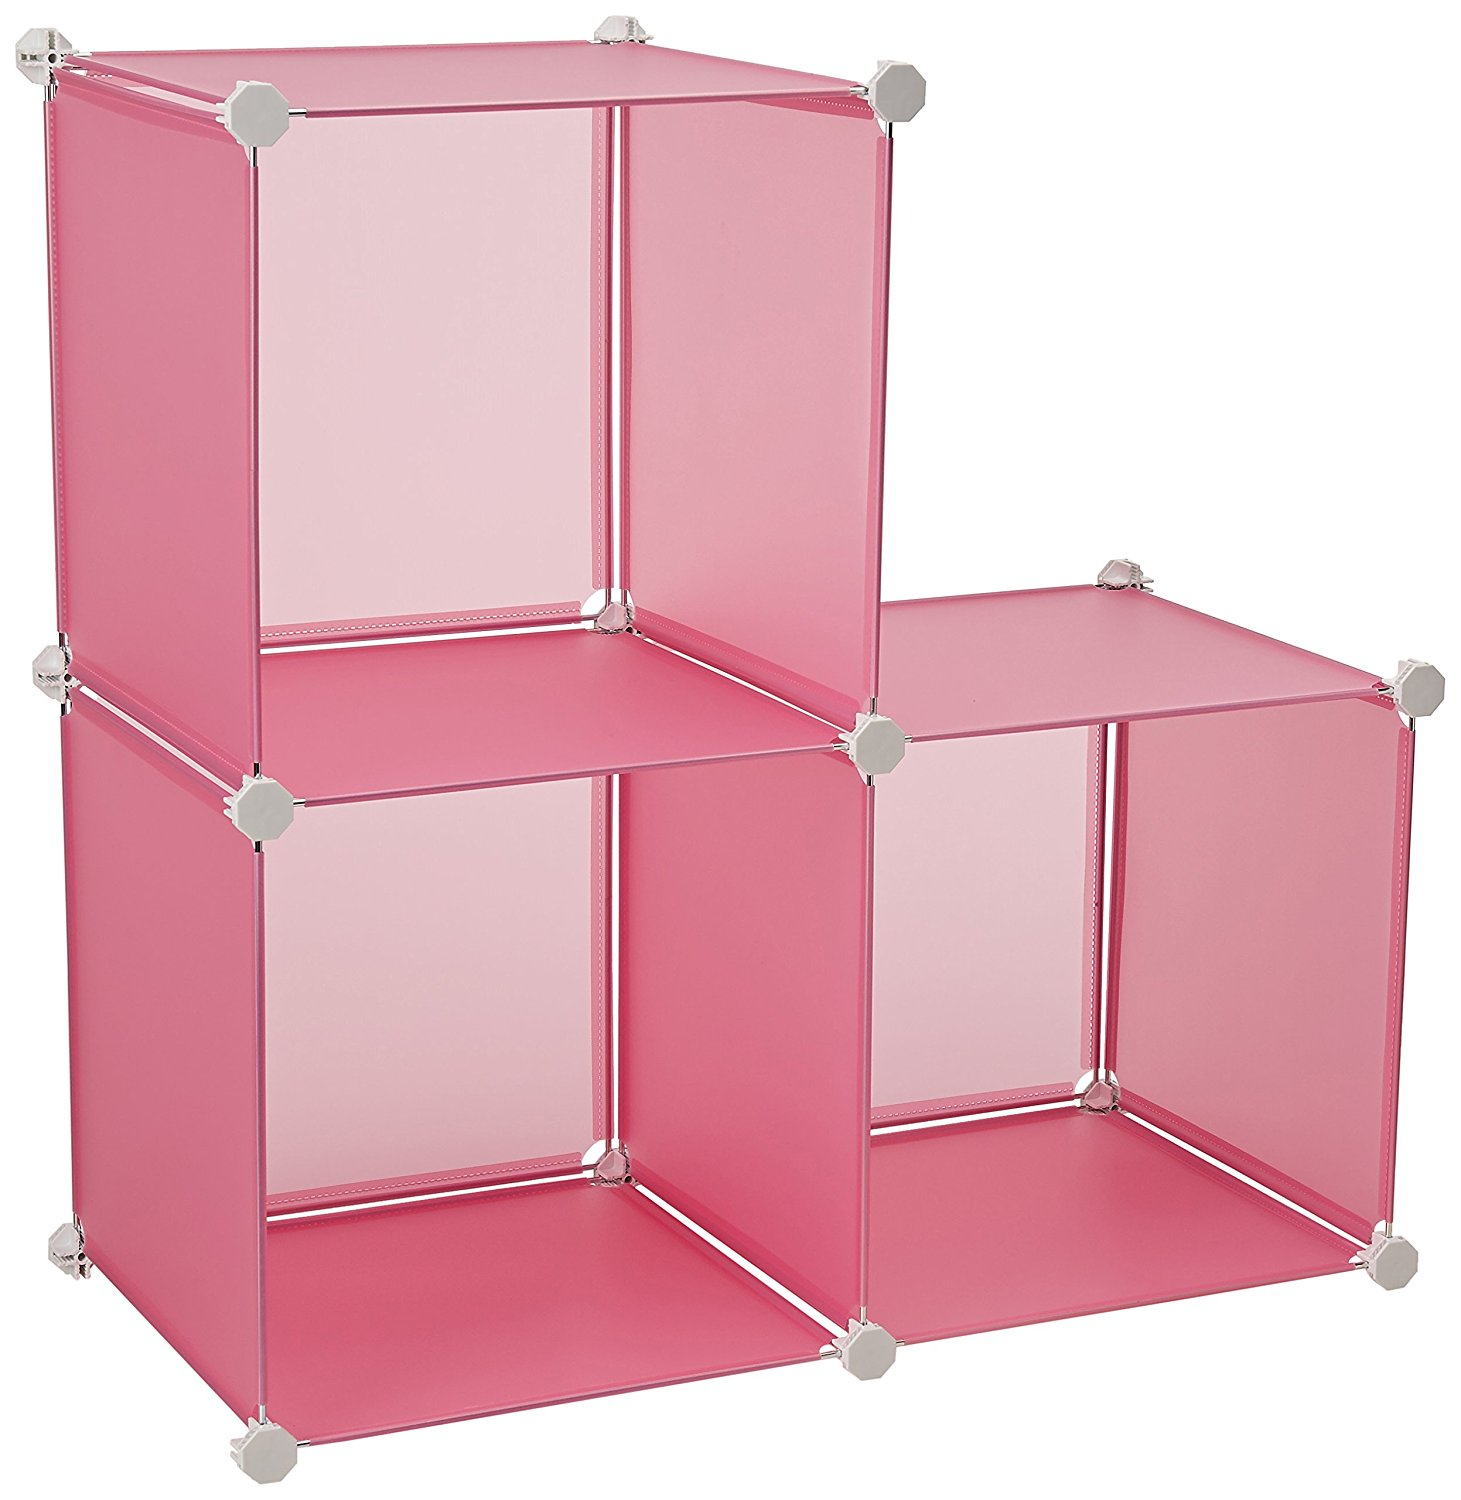 ... Stackable · Honey Can Do SFT 02166 Plastic Storage Cubes, 3 Pack,